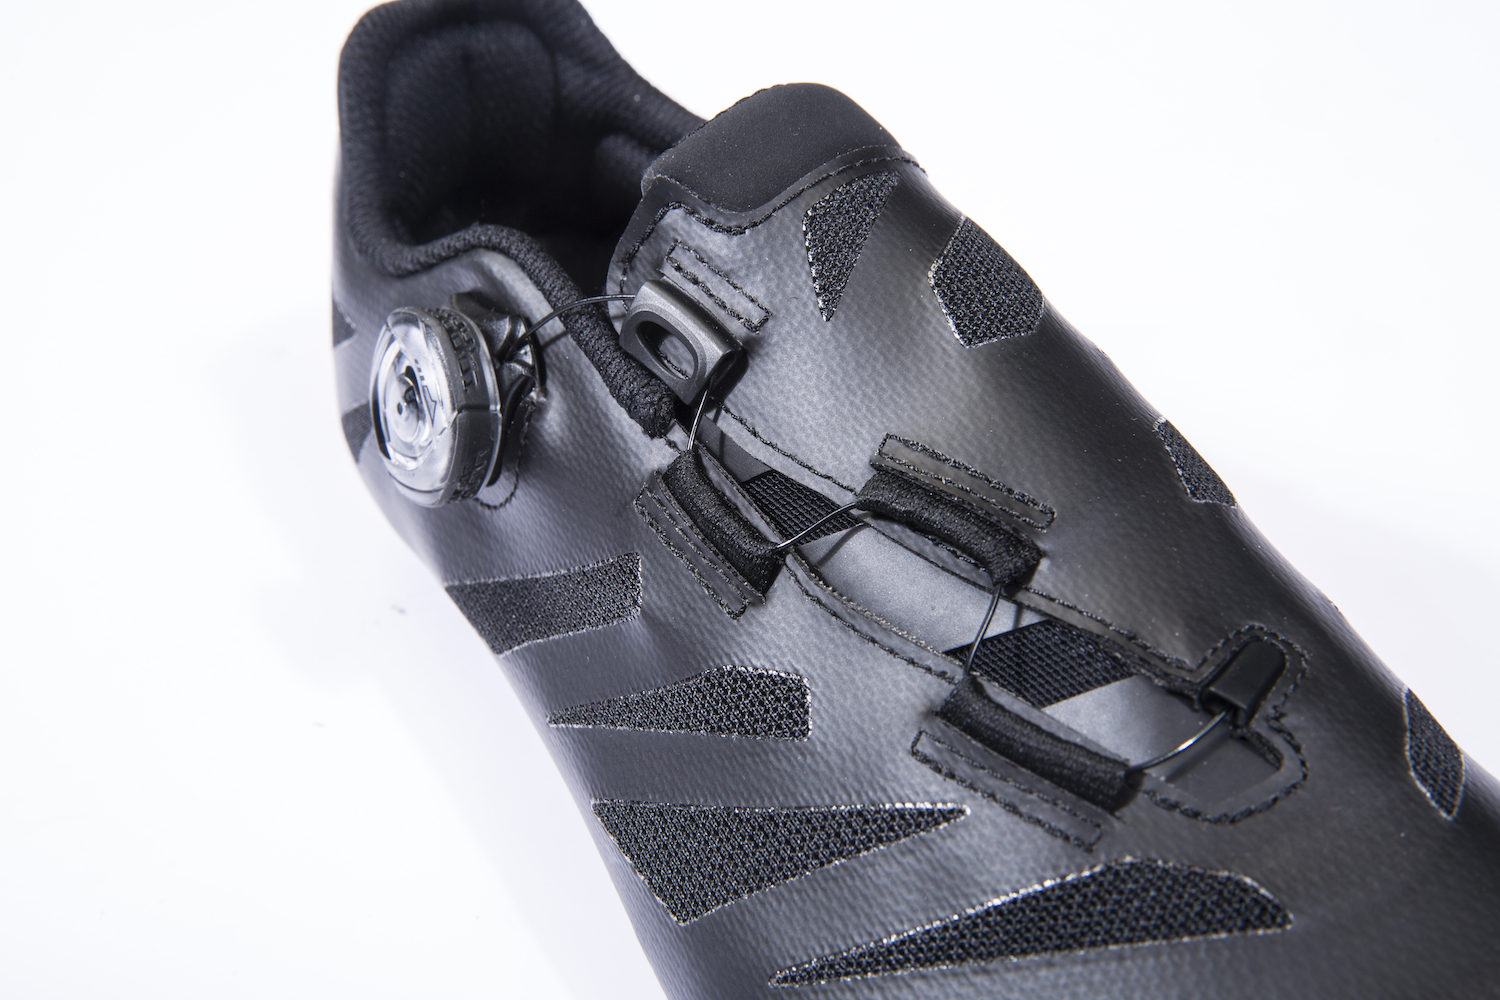 37859b22005 Mavic Cosmic Ultimate shoes review - Cycling Weekly